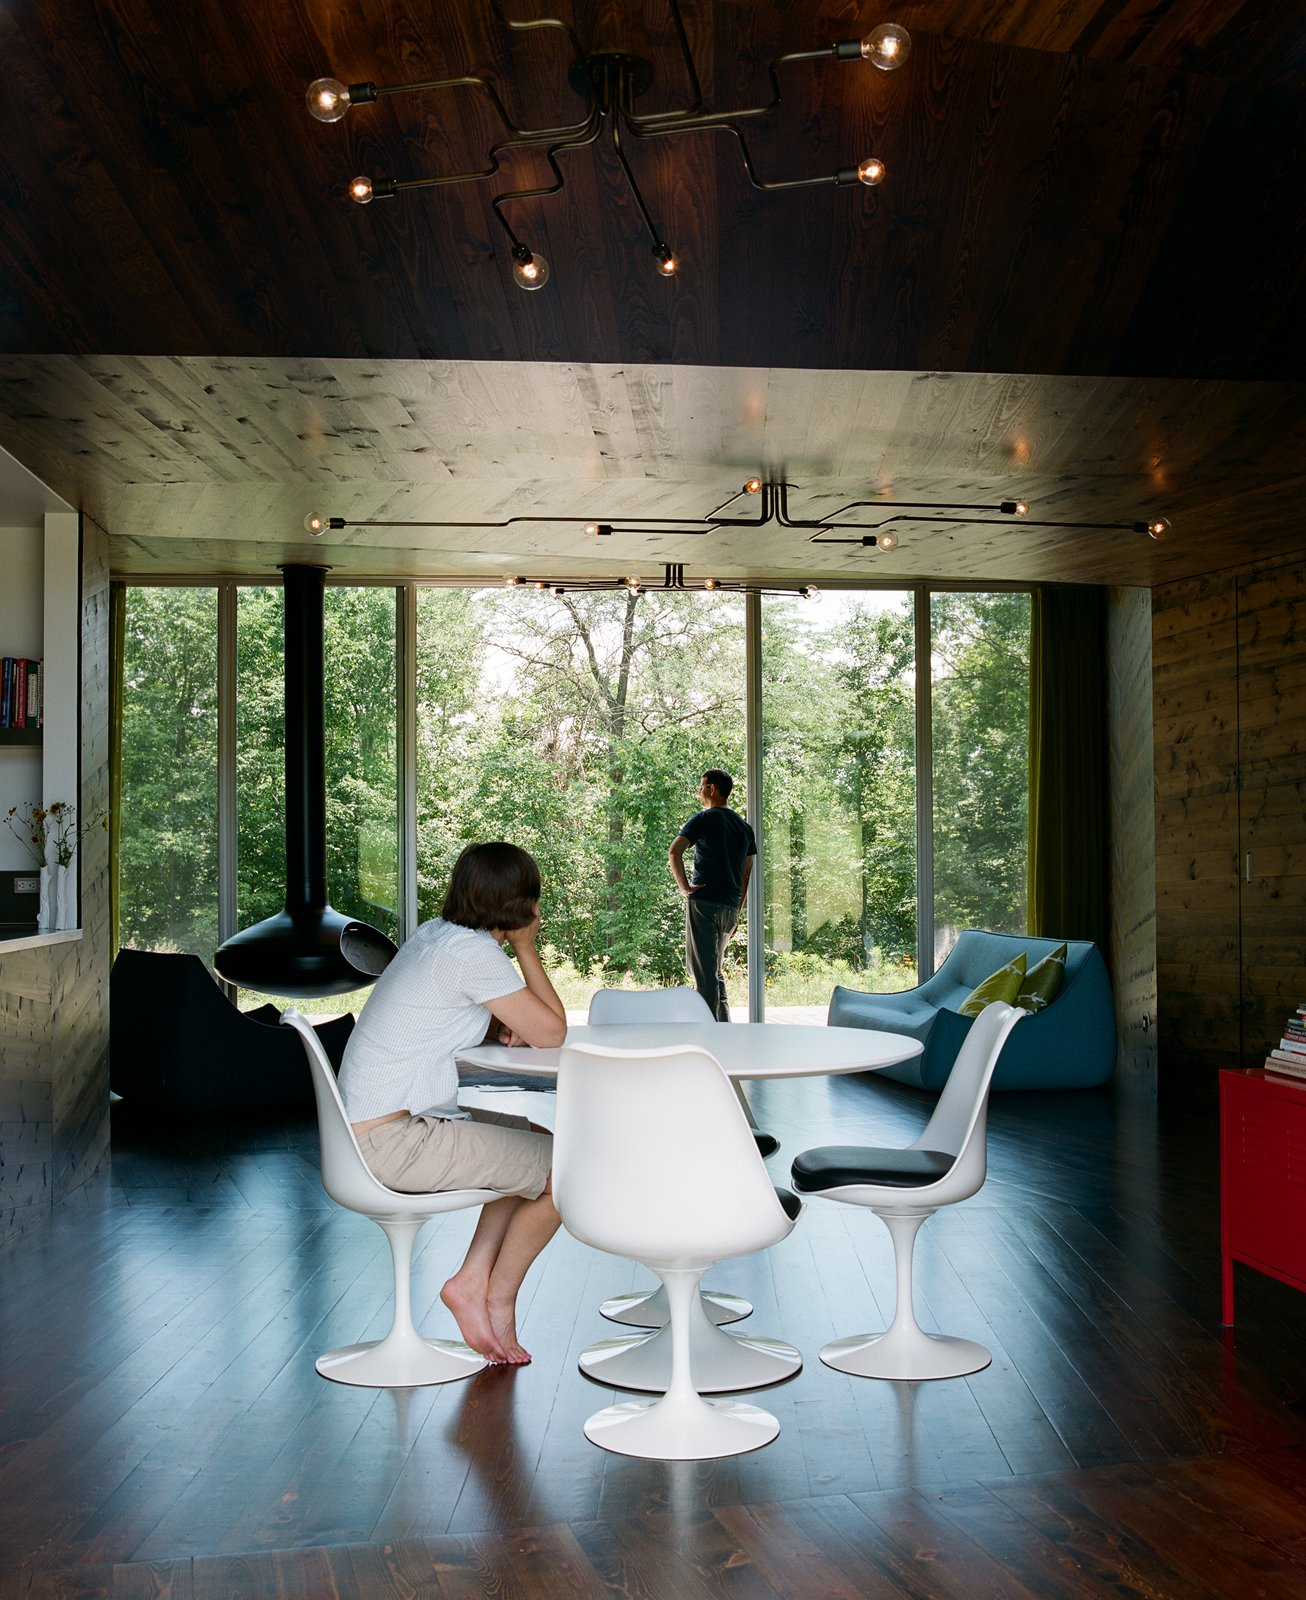 Dining Room, Chair, and Table In the main room, a Saarinen dining table is surrounded by four Tulip chairs, positioned to provide a mealtime panorama of the woods beyond the house.  New Grass Roots by Dwell from Dining Room Design Ideas